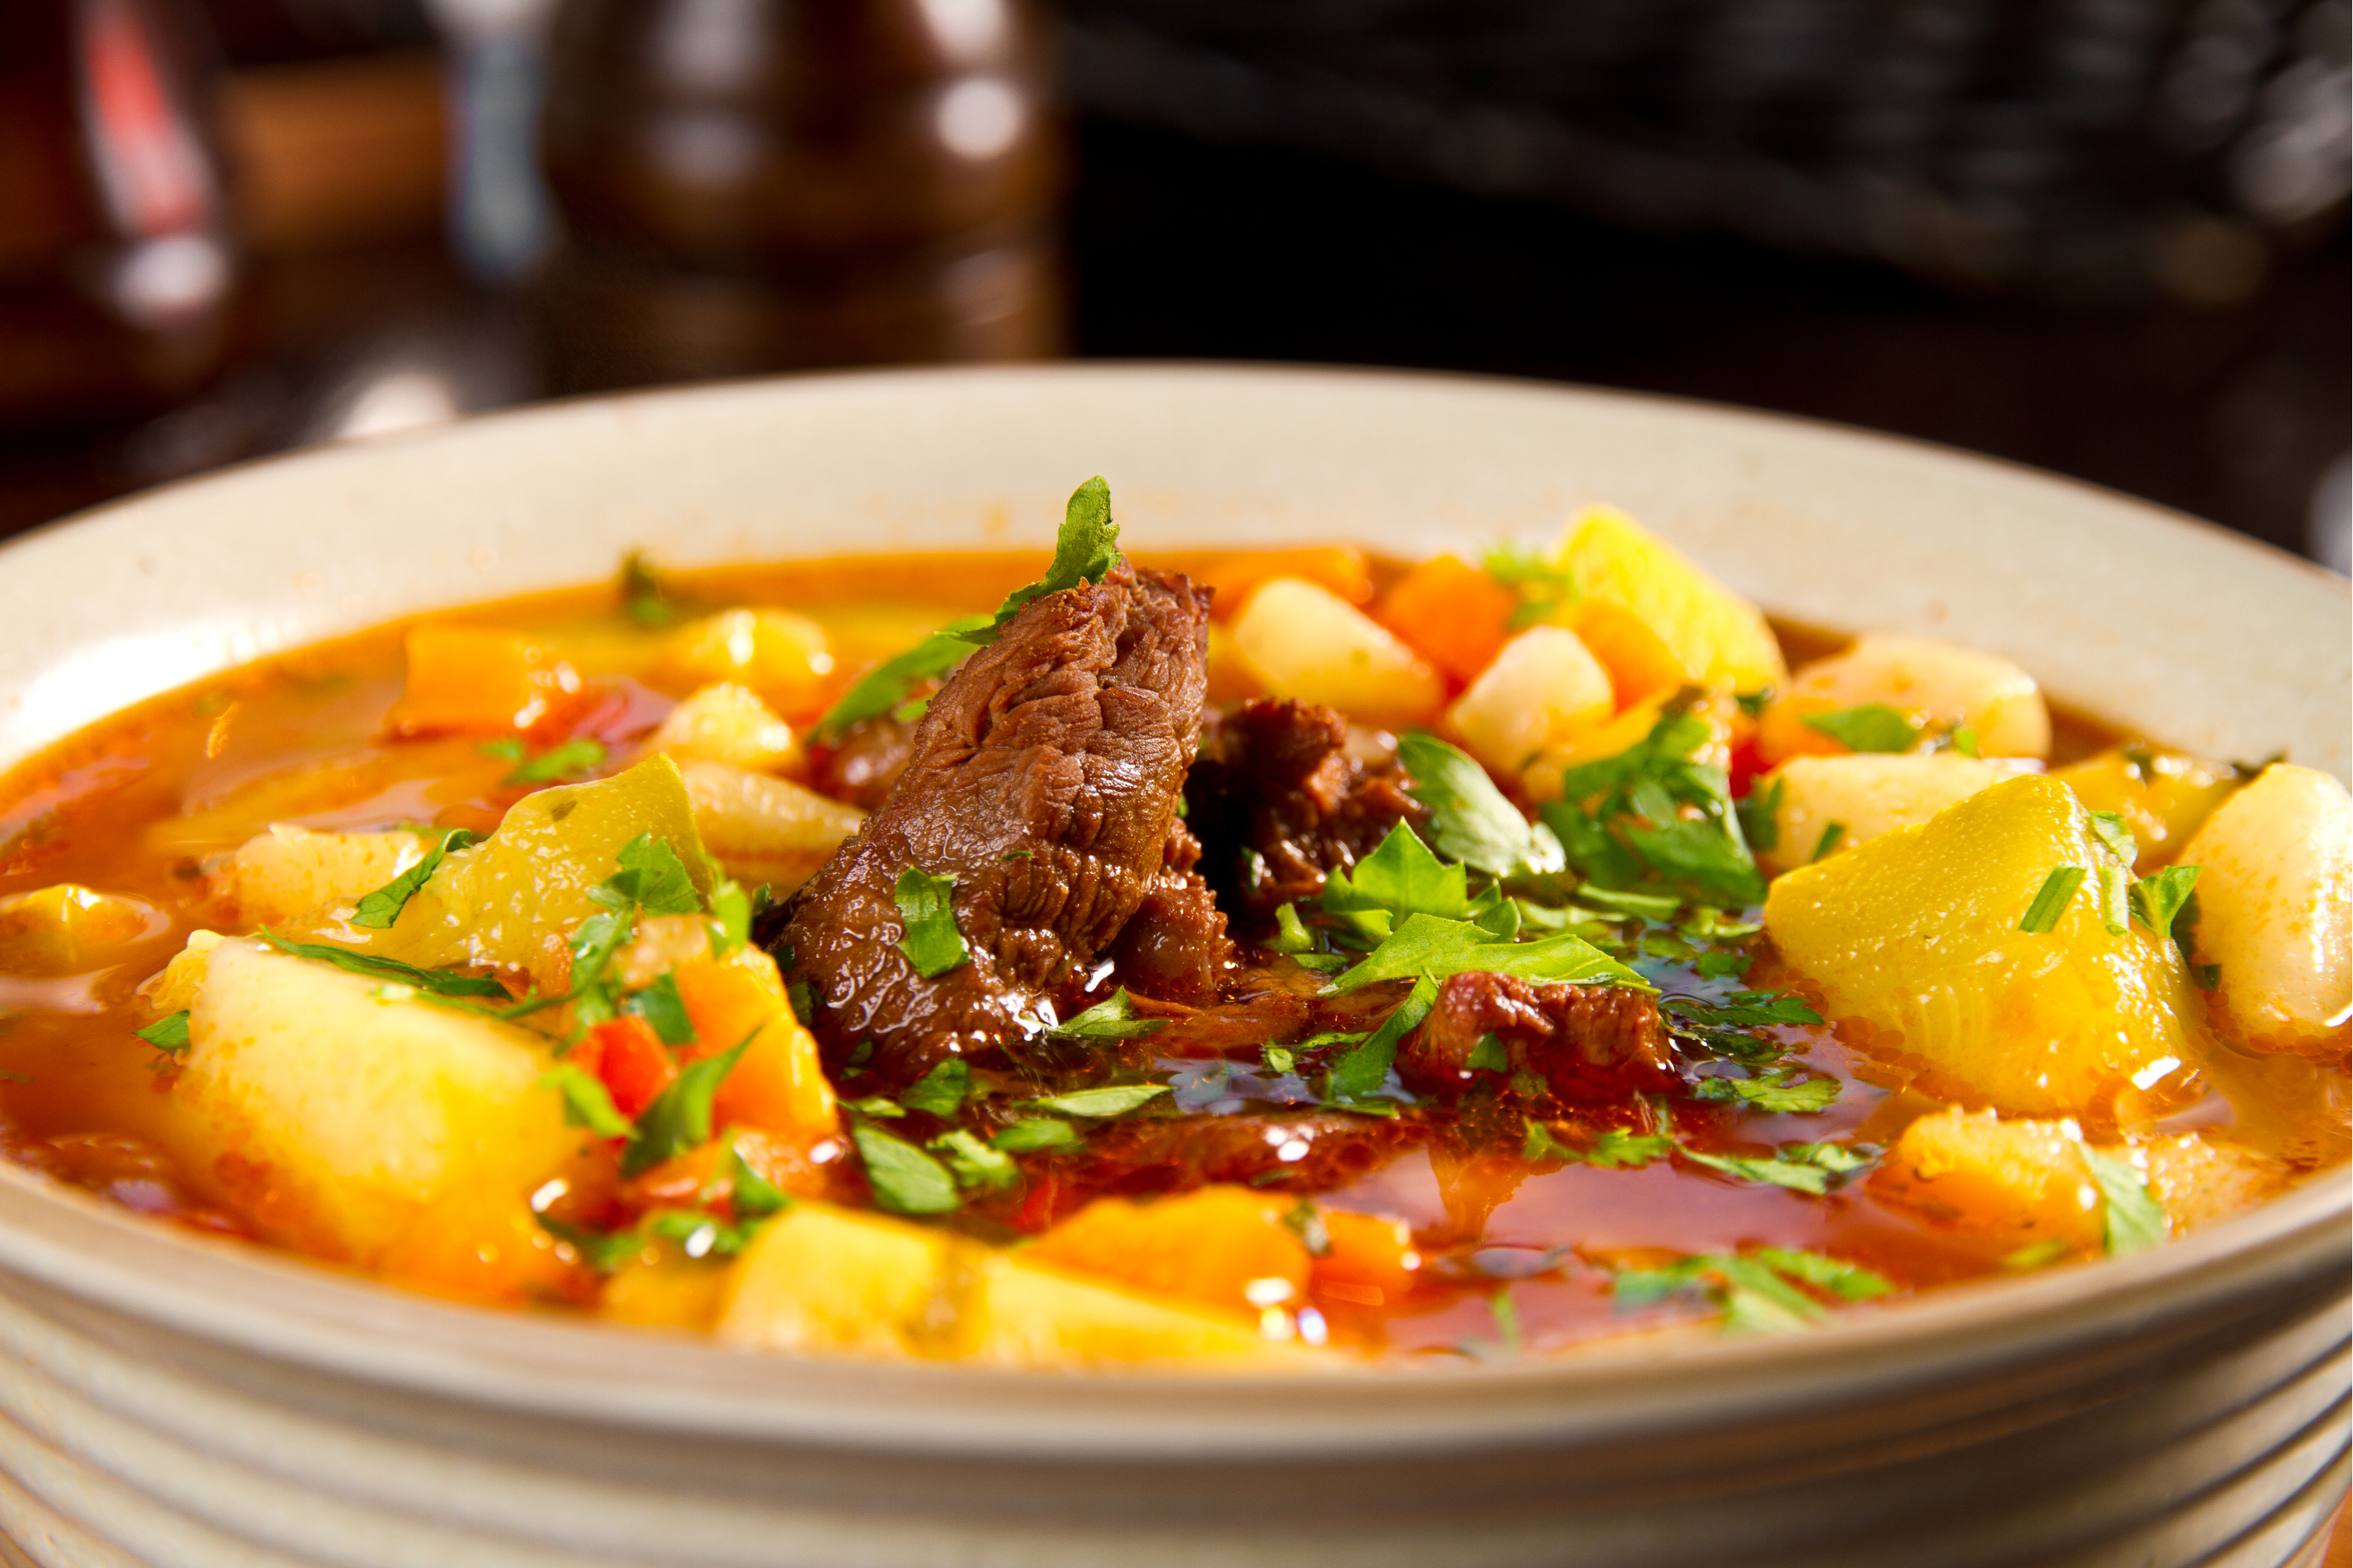 bowl of beef soup with potatoes, carrots, and parsley